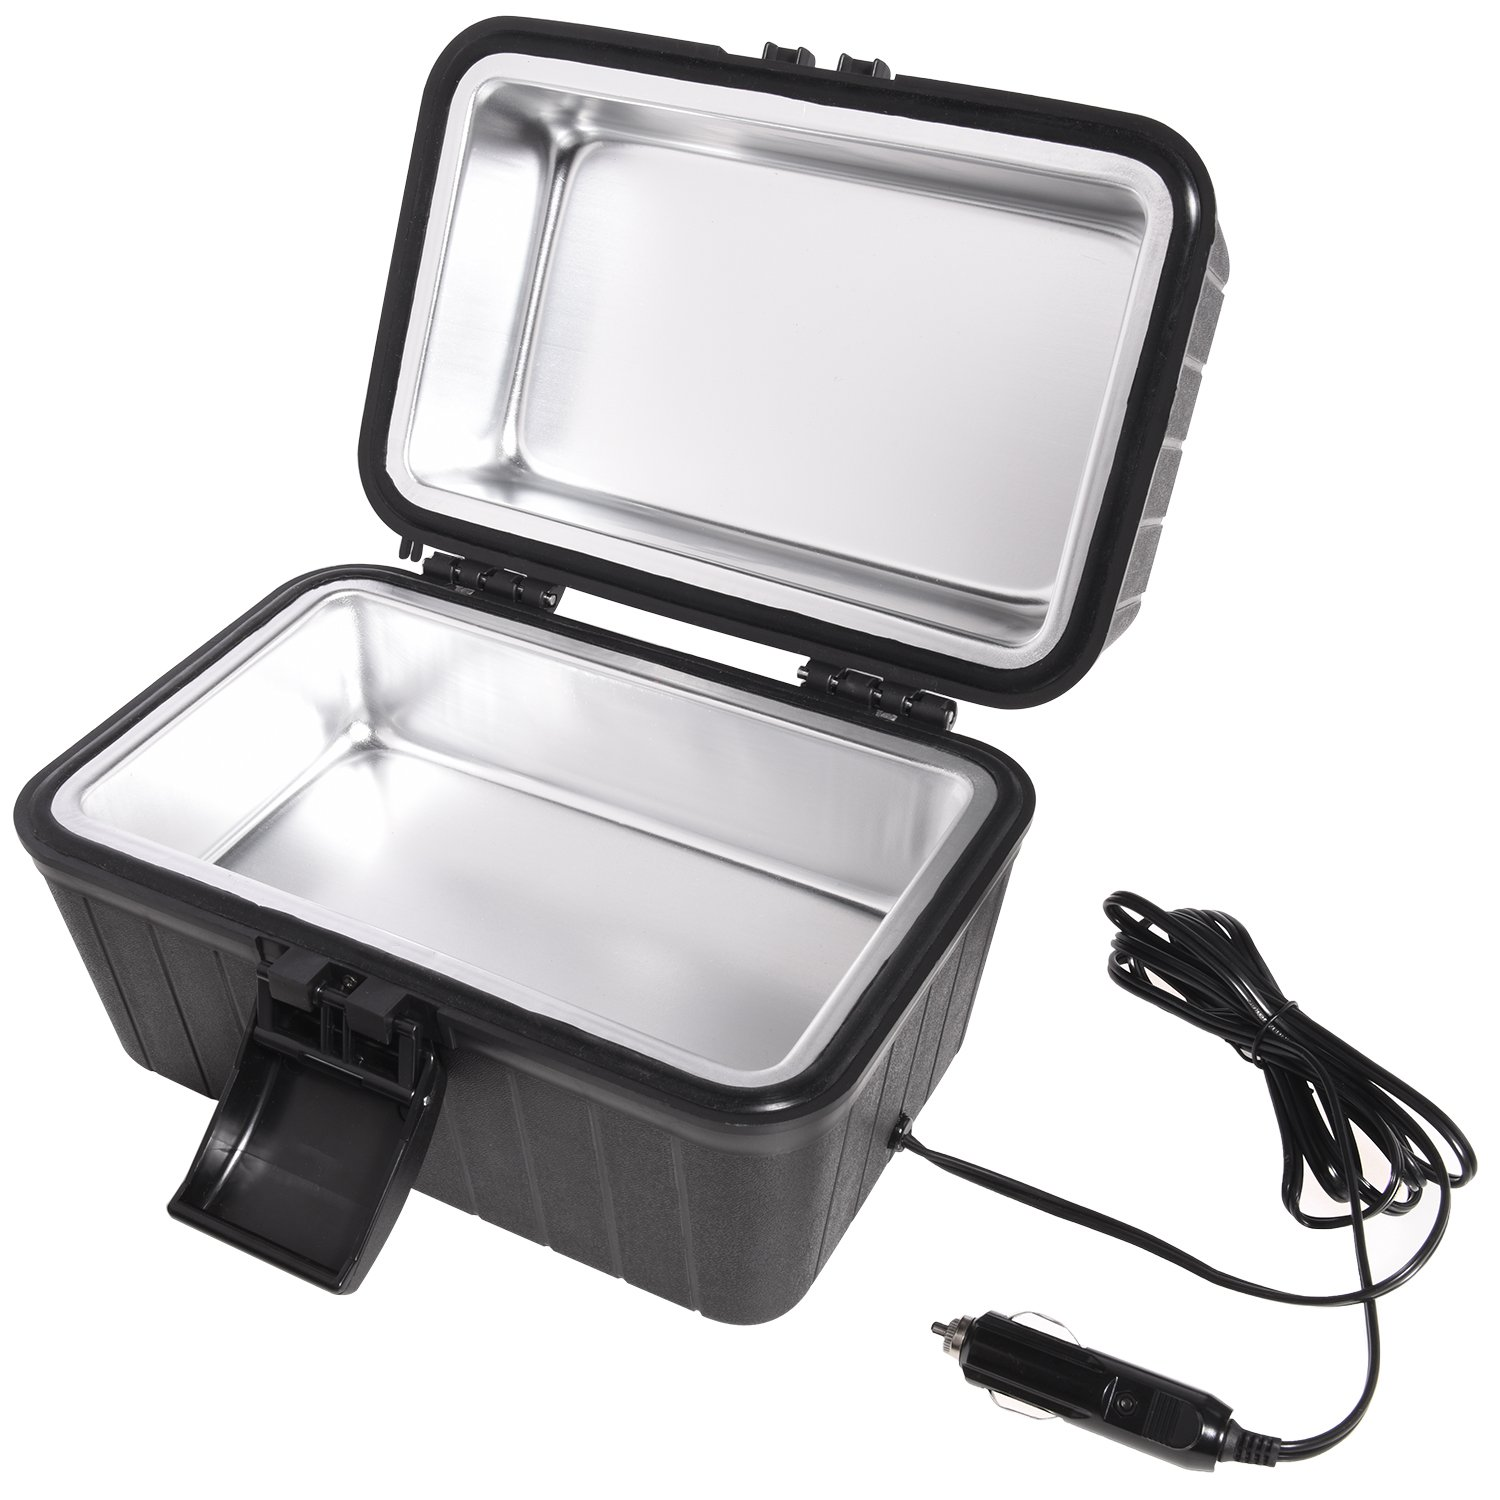 Ivation Car and RV Lunch Box with 12 Volt Powered Stove – Plugs Into Car Cigarette Lighter Or Any 12V Source – Quickly Heats Food Up to 300-Degrees Fahrenheit